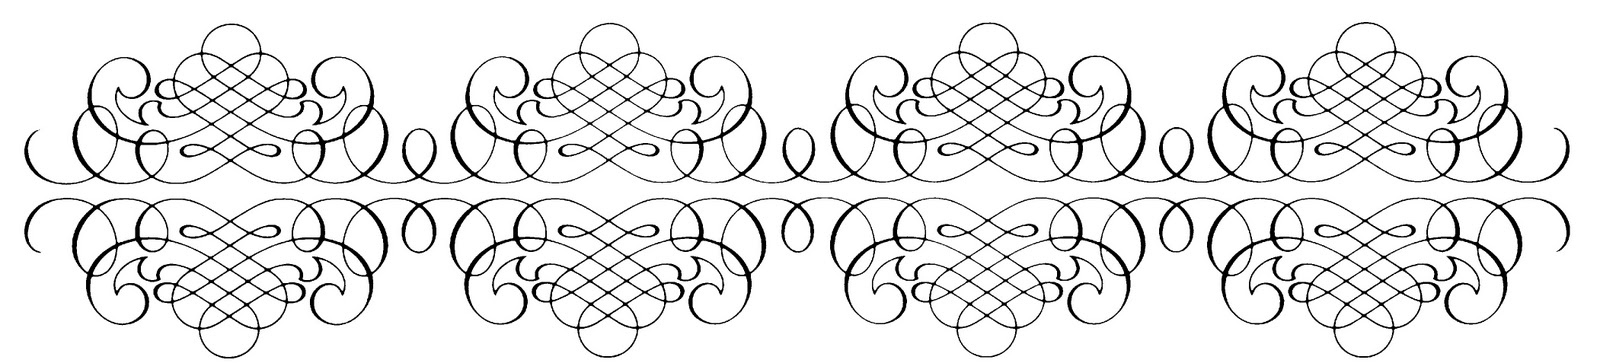 Calligraphy Border Image Search Results